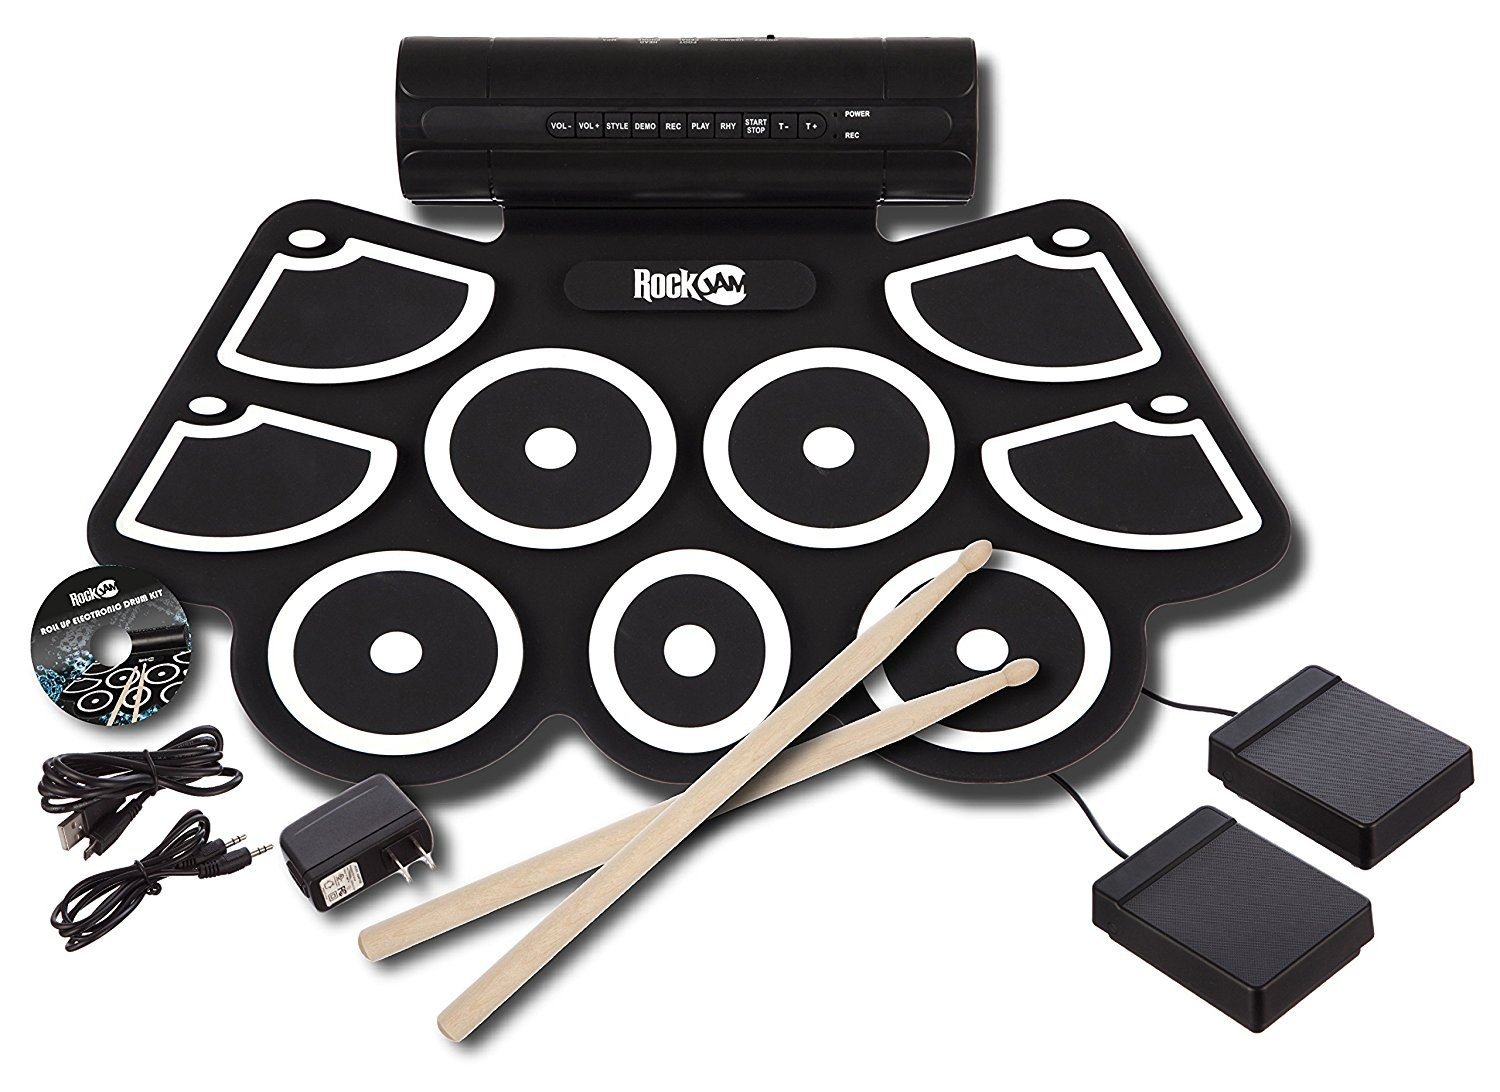 Rockjam Electronic Roll Up Midi Drum Kit With Built In